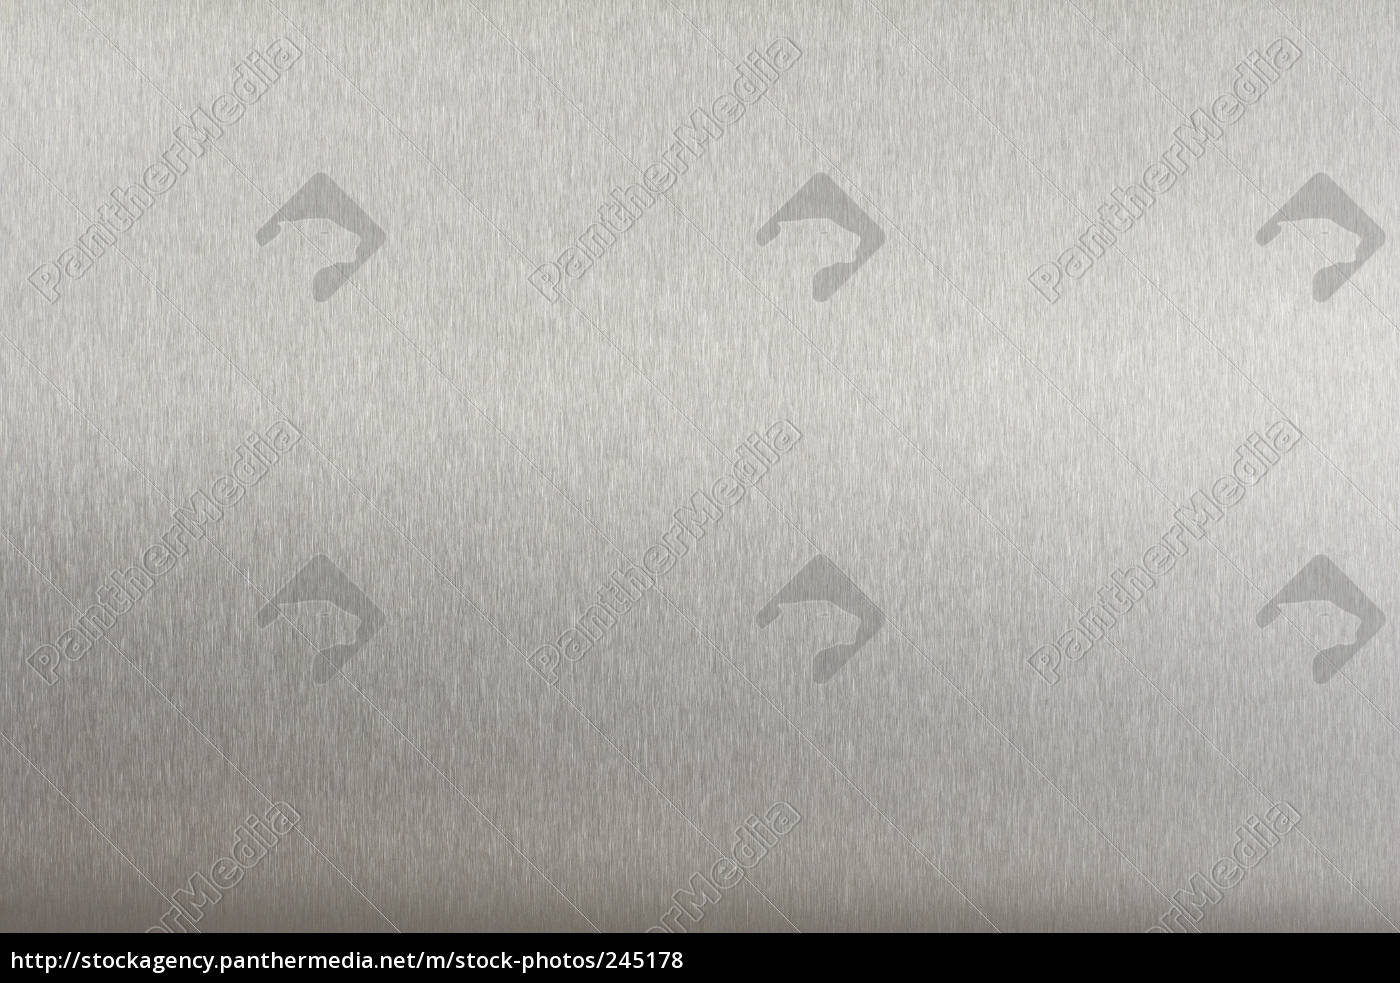 stainless, steel, sheet - 245178